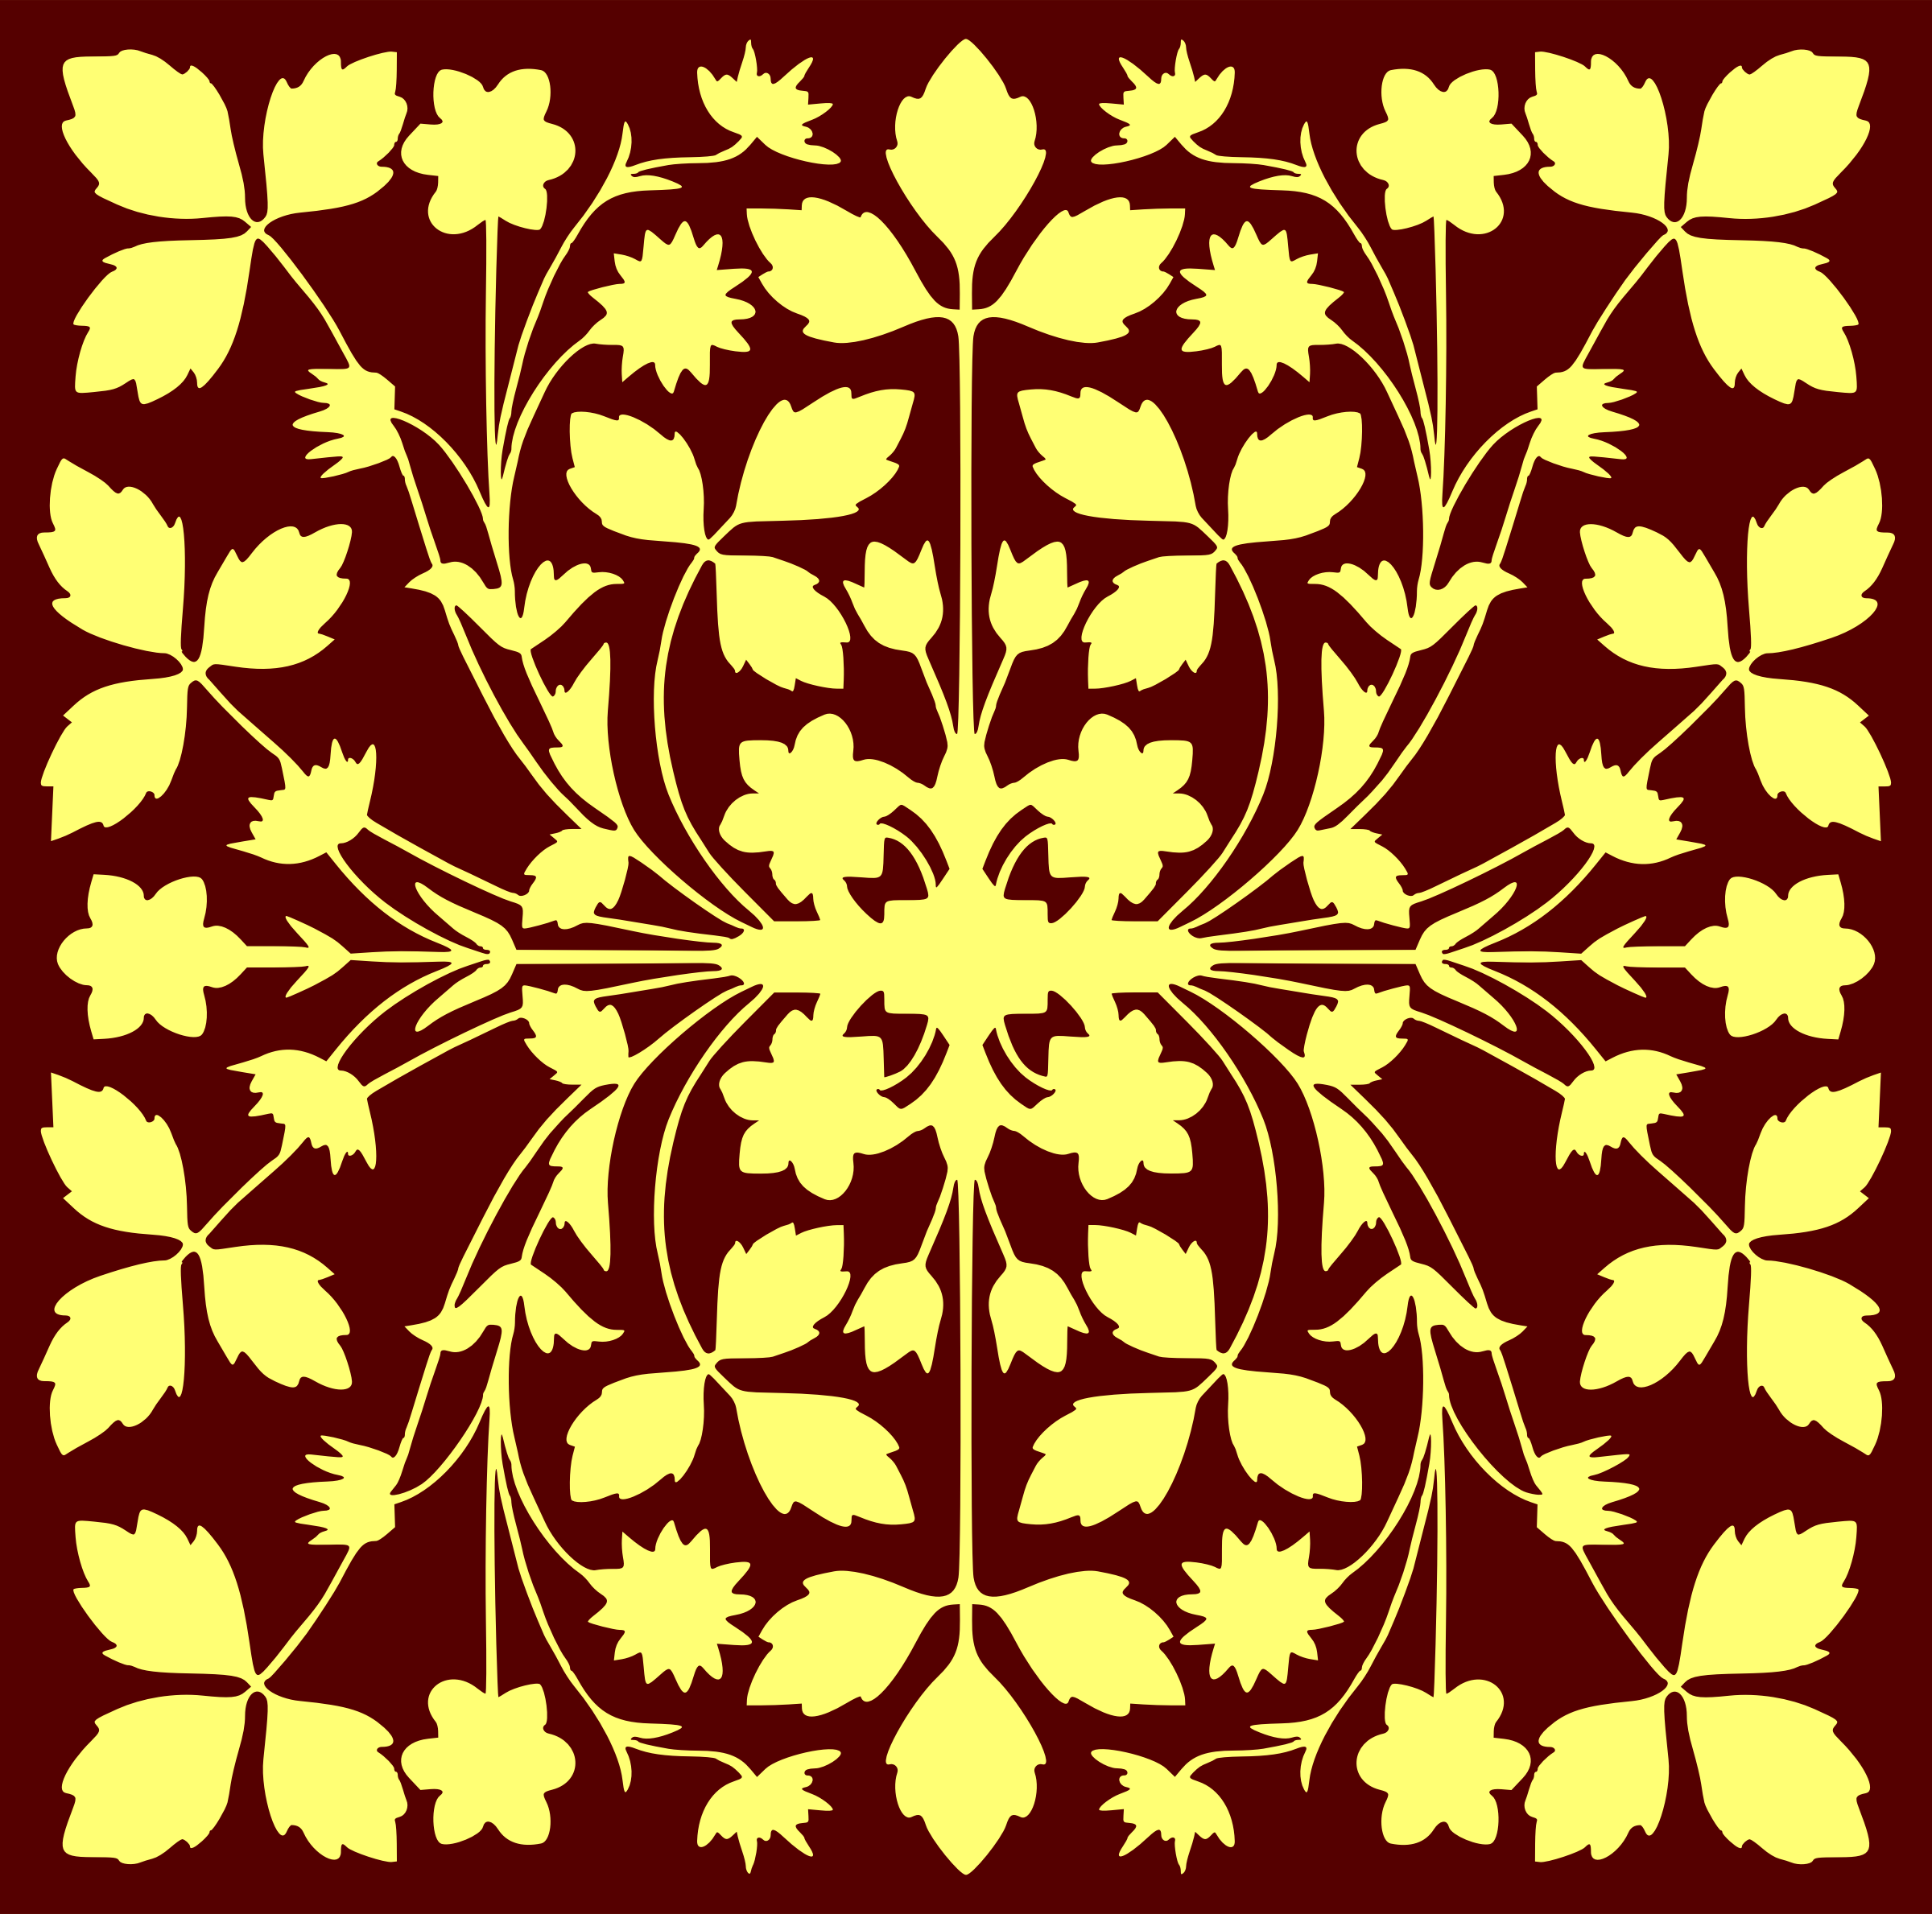 Floral tile 3 by Firkin